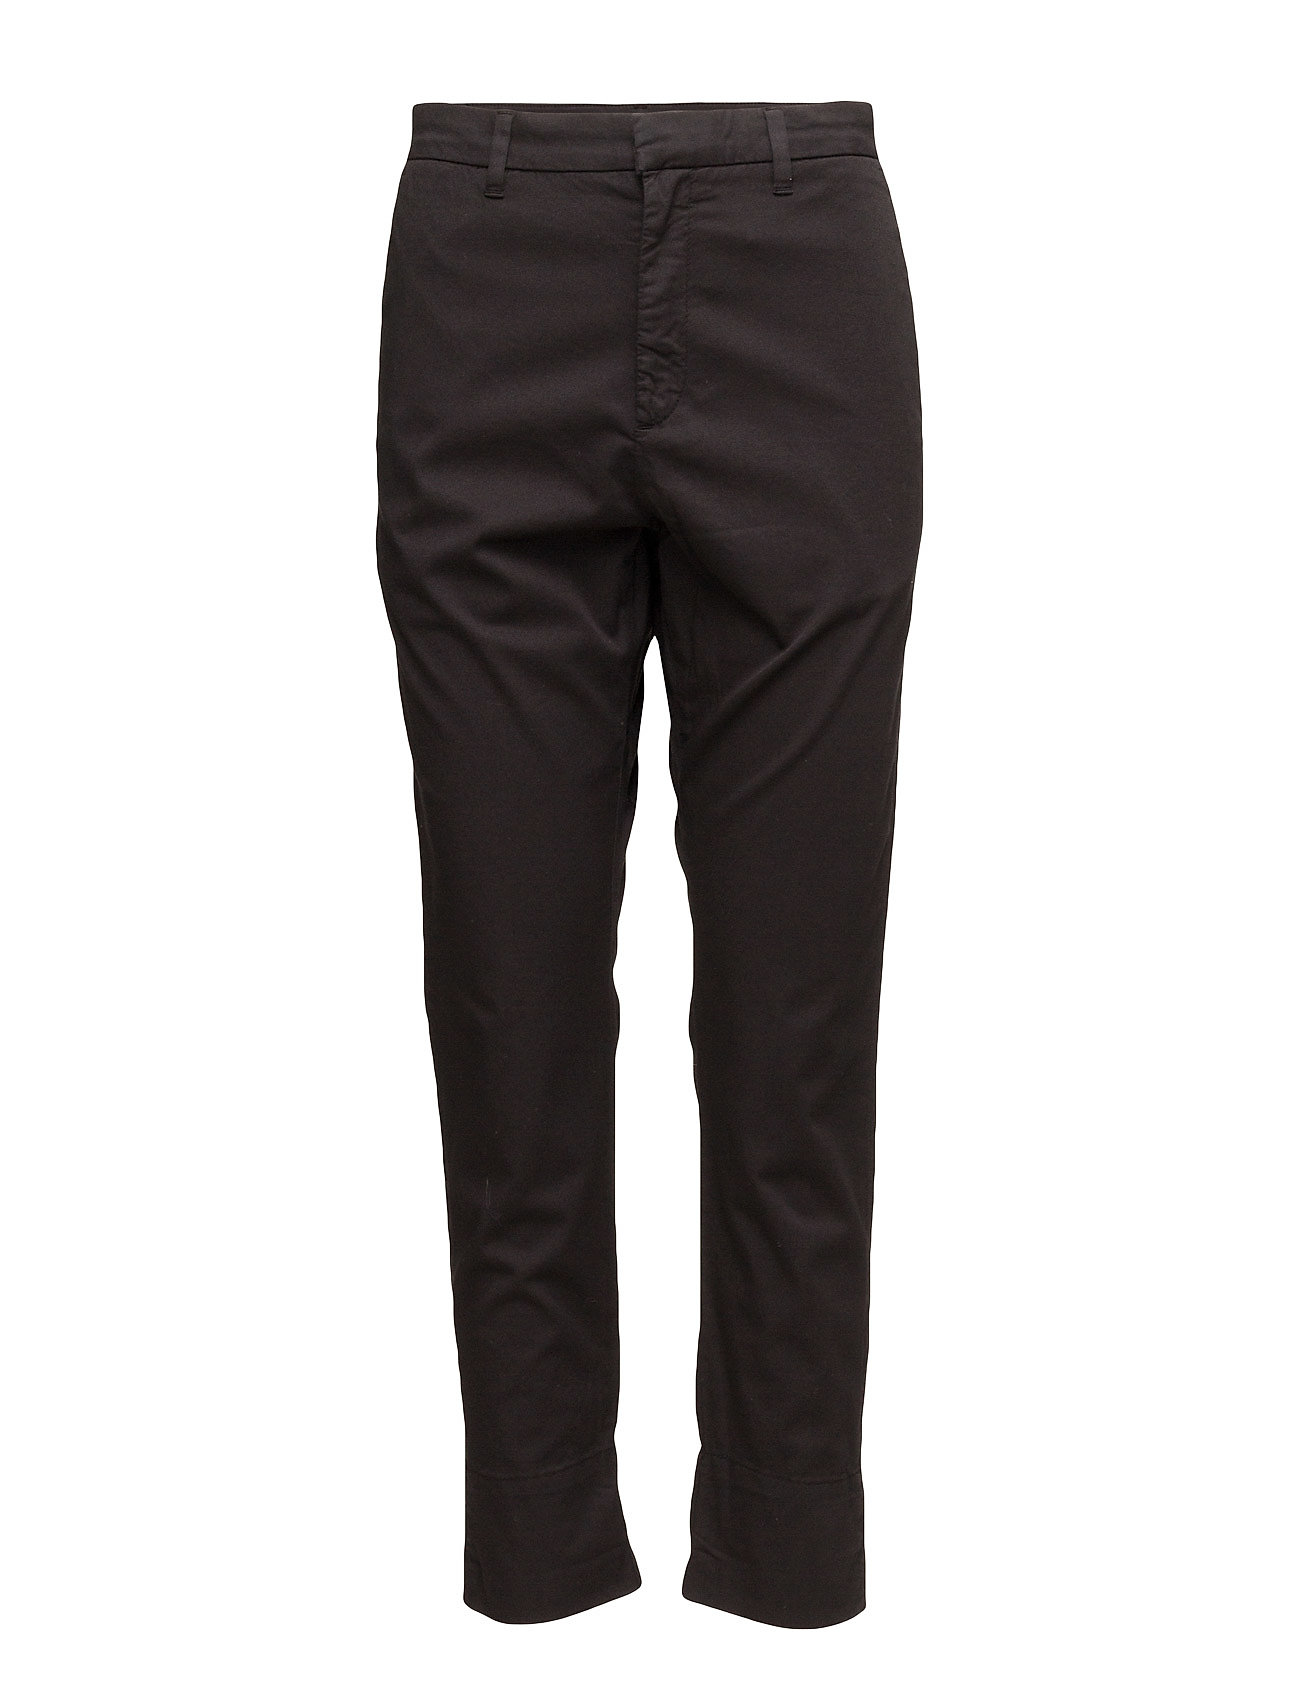 Hope News Trouser - BLACK